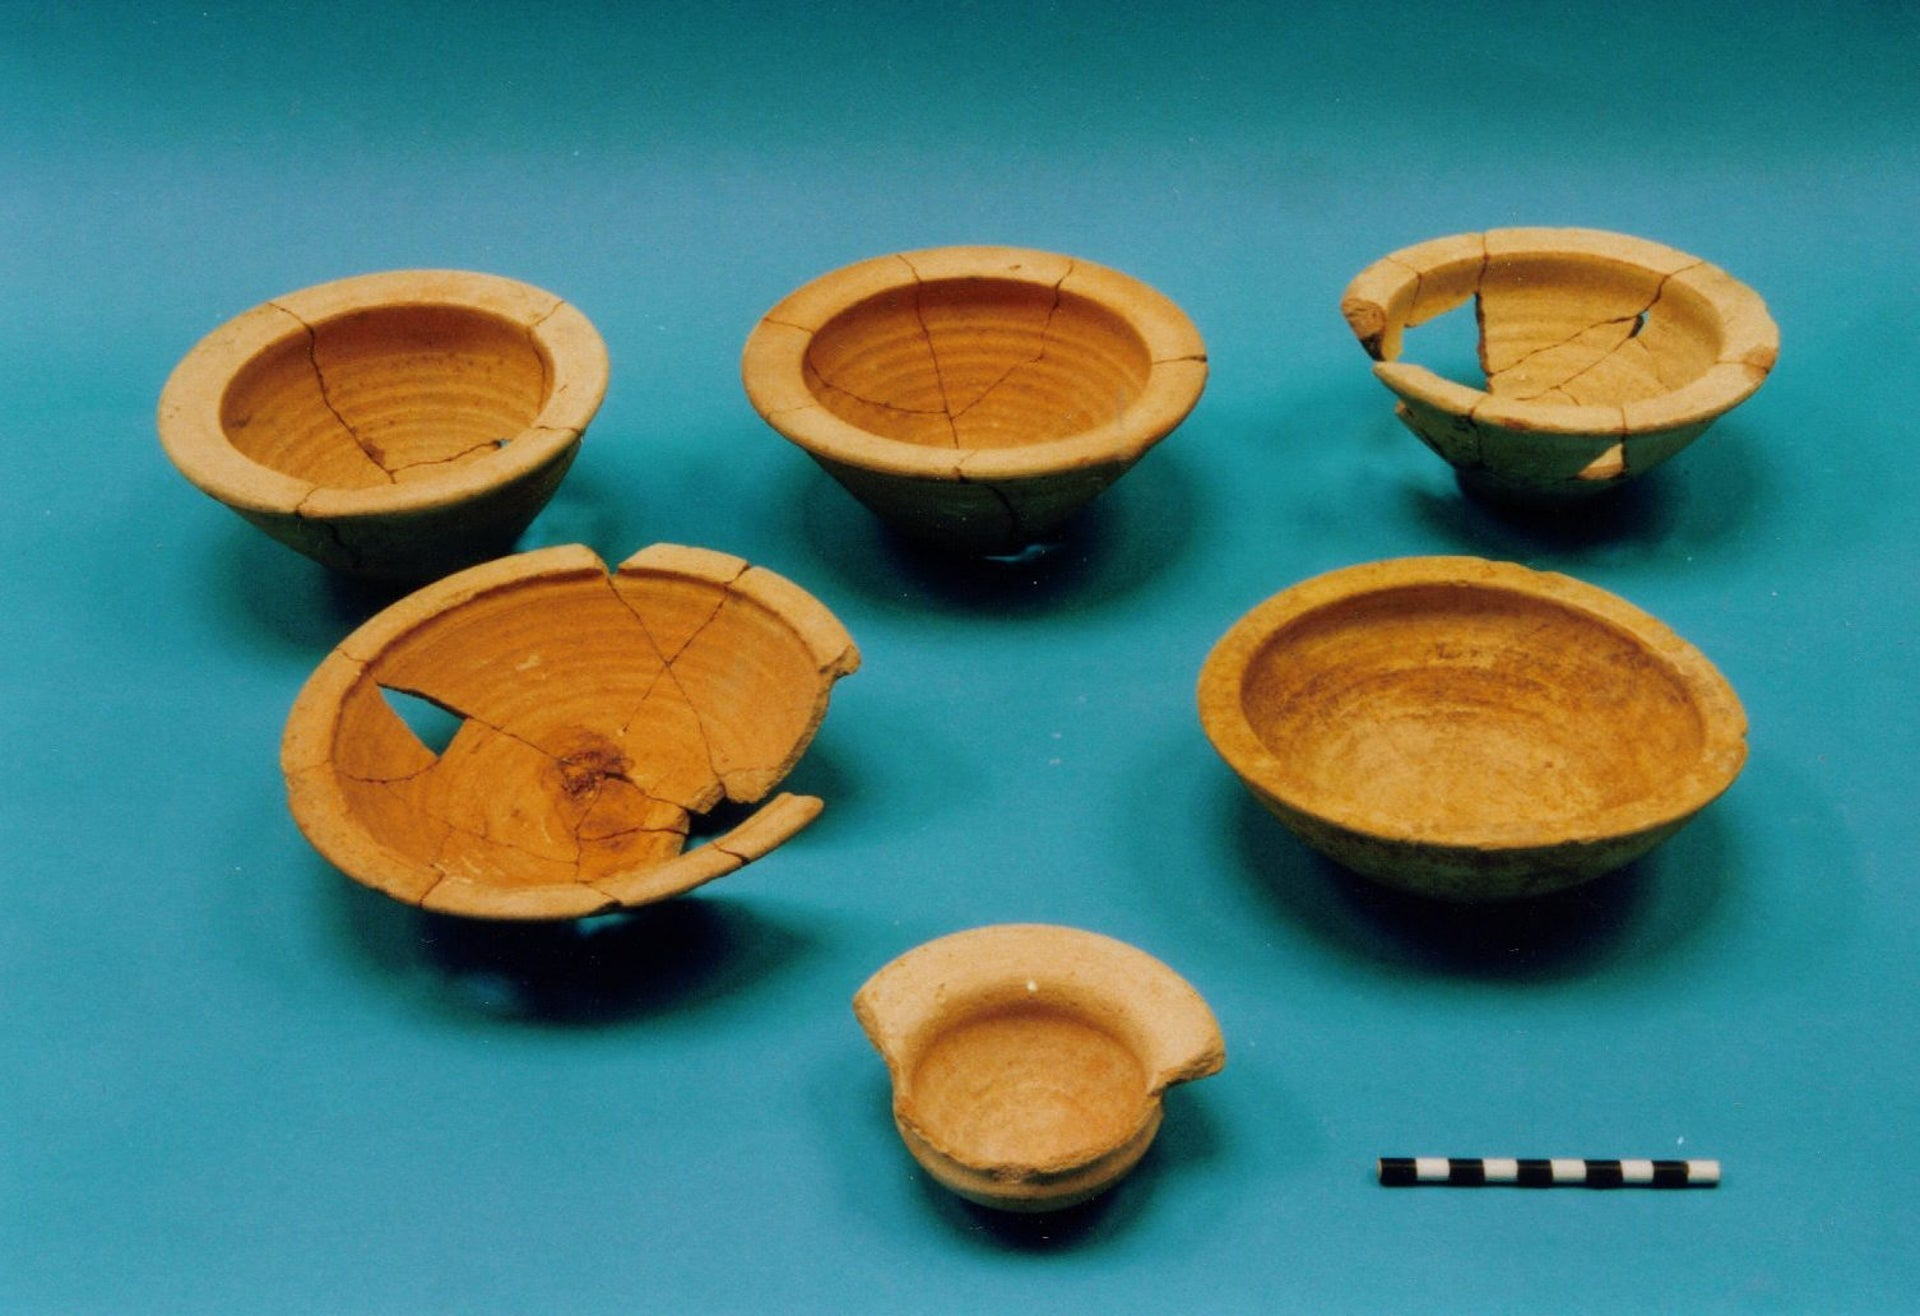 """So-called """"Akko bowls,"""" aesthetically ascetic clay bowls that were hardly popular in the Middle Ages, except among monastic orders."""